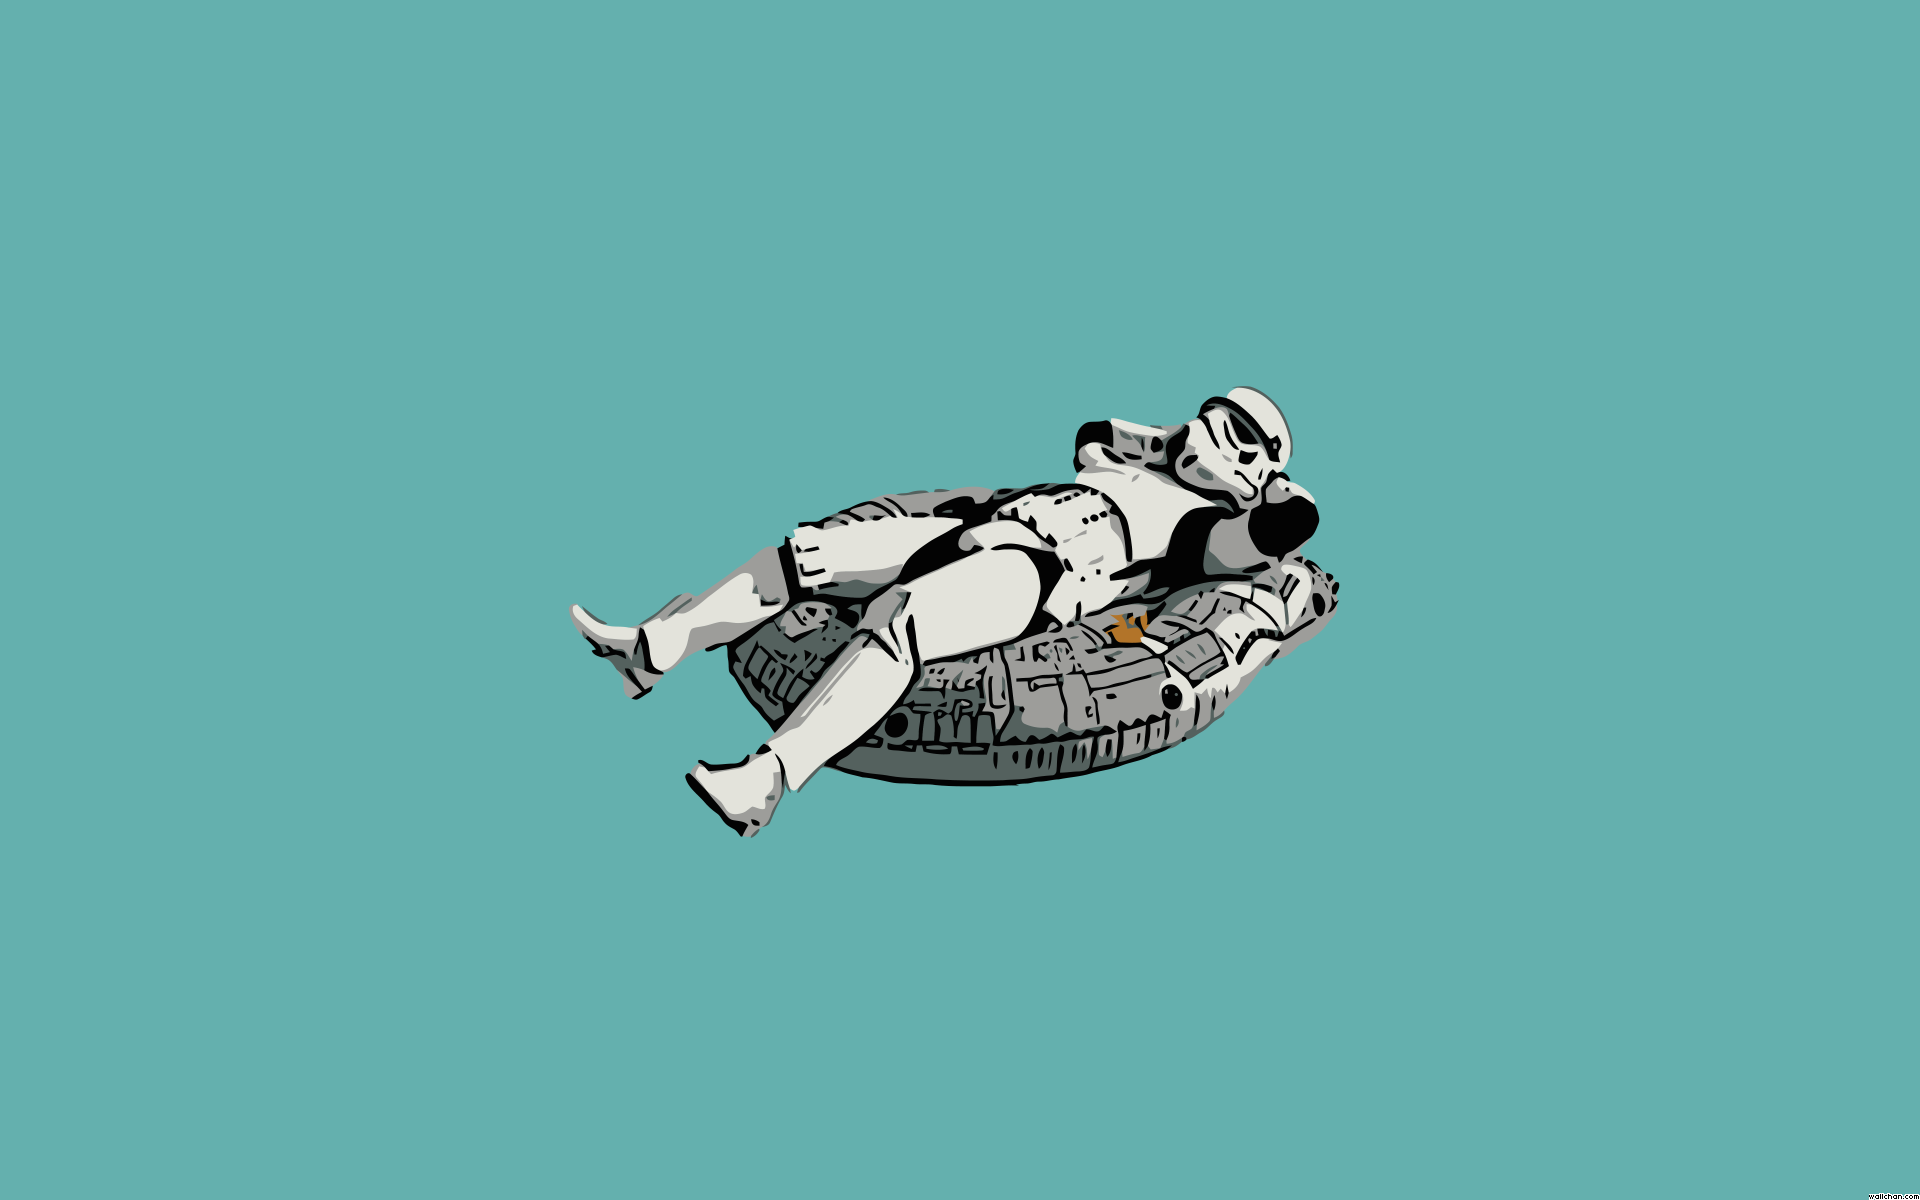 Star Wars Wallpaper Funny Stormtrooper Wallpaper Star Wars Geek Star Wars Wallpaper Star Wars Background